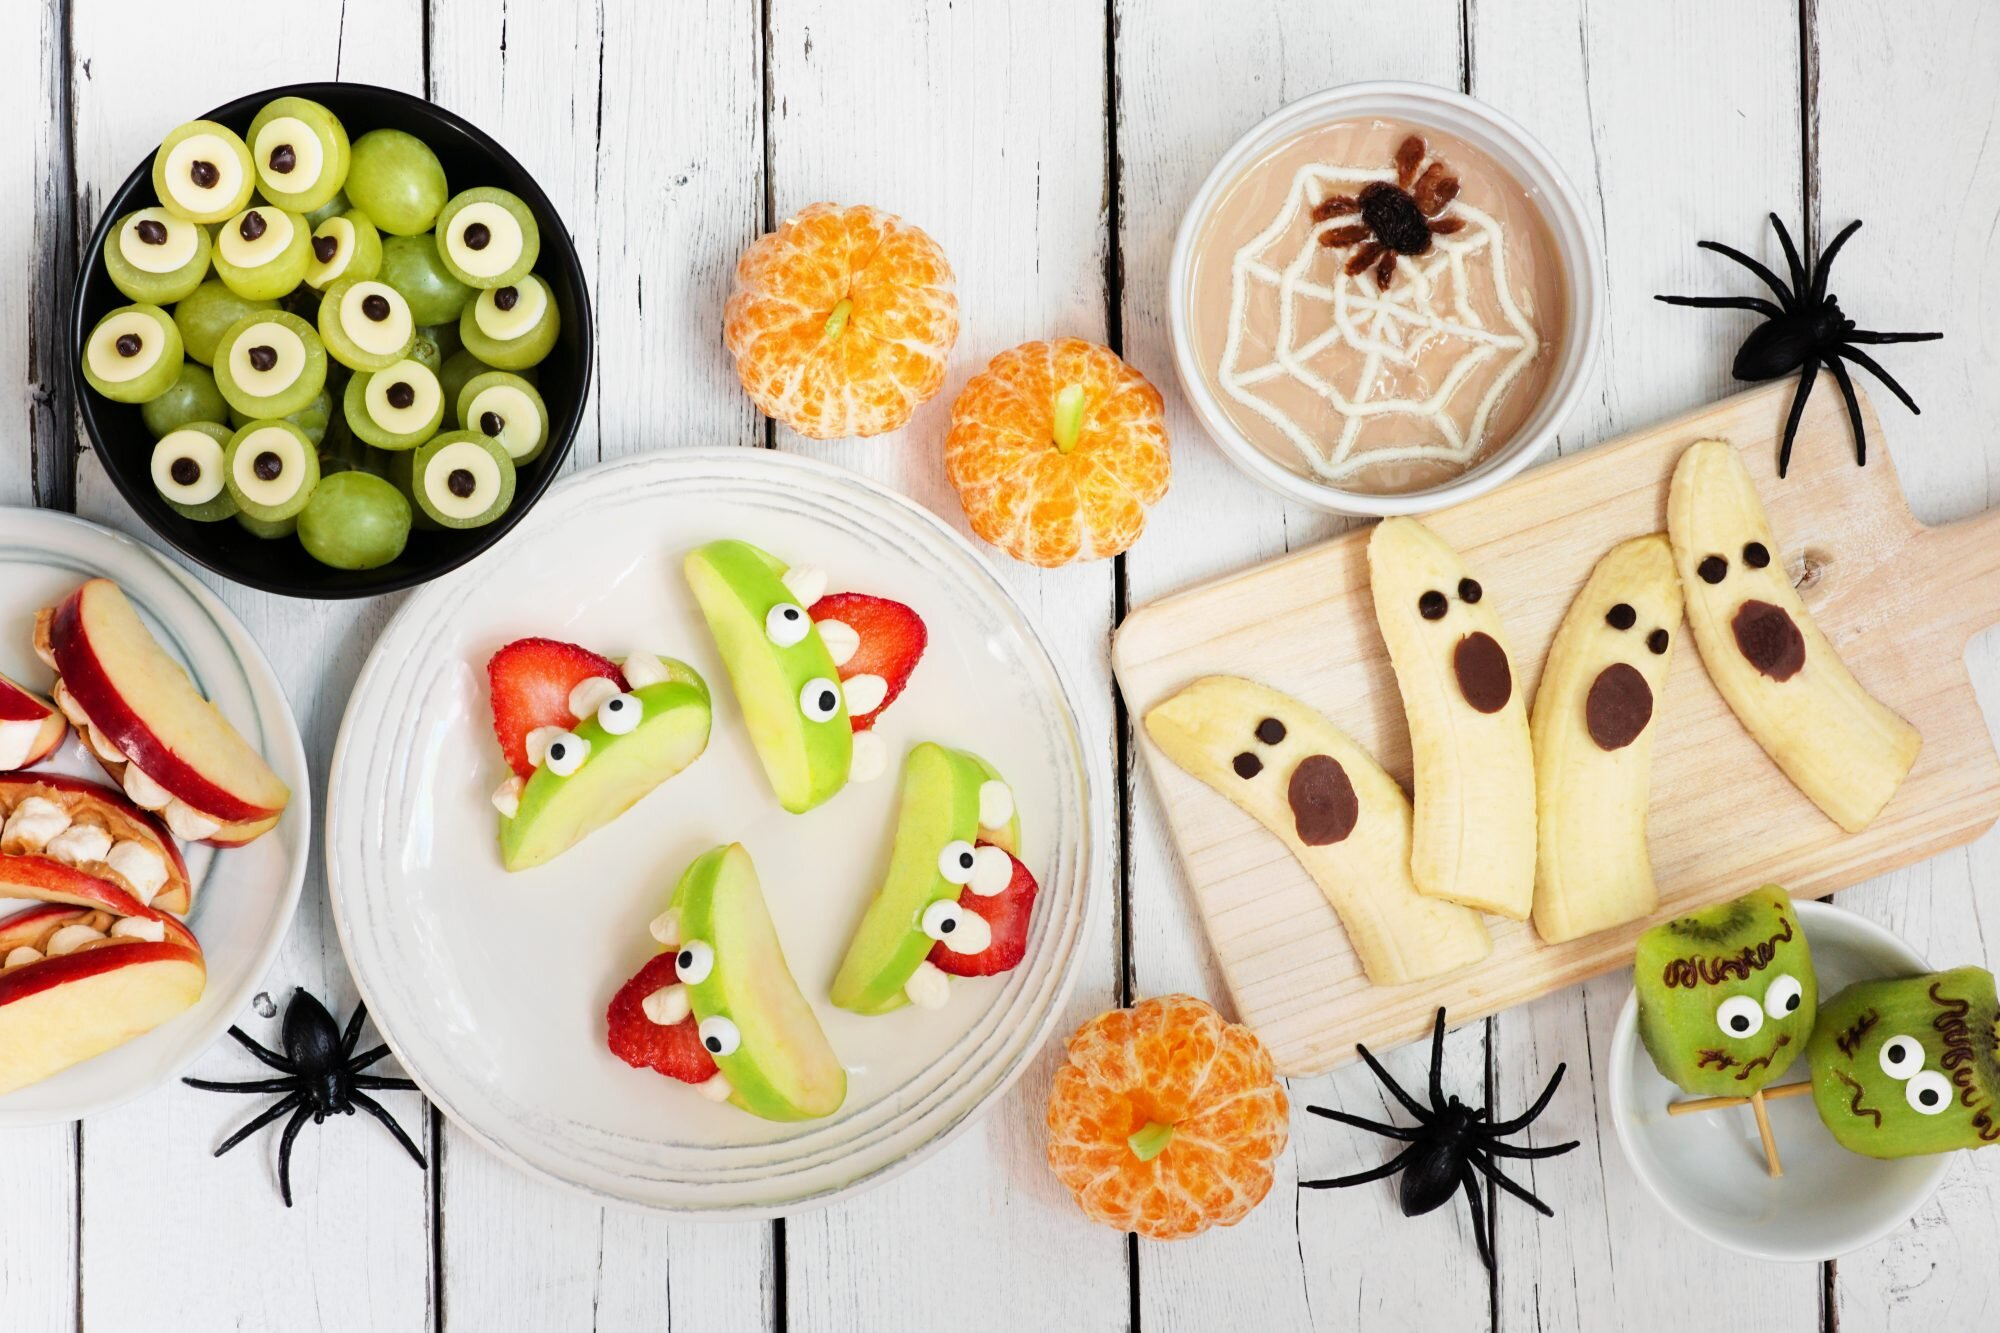 Favorite Halloween Treats.21 Halloween Food Ideas And Party Foods Perfect For Any October Gathering Real Simple